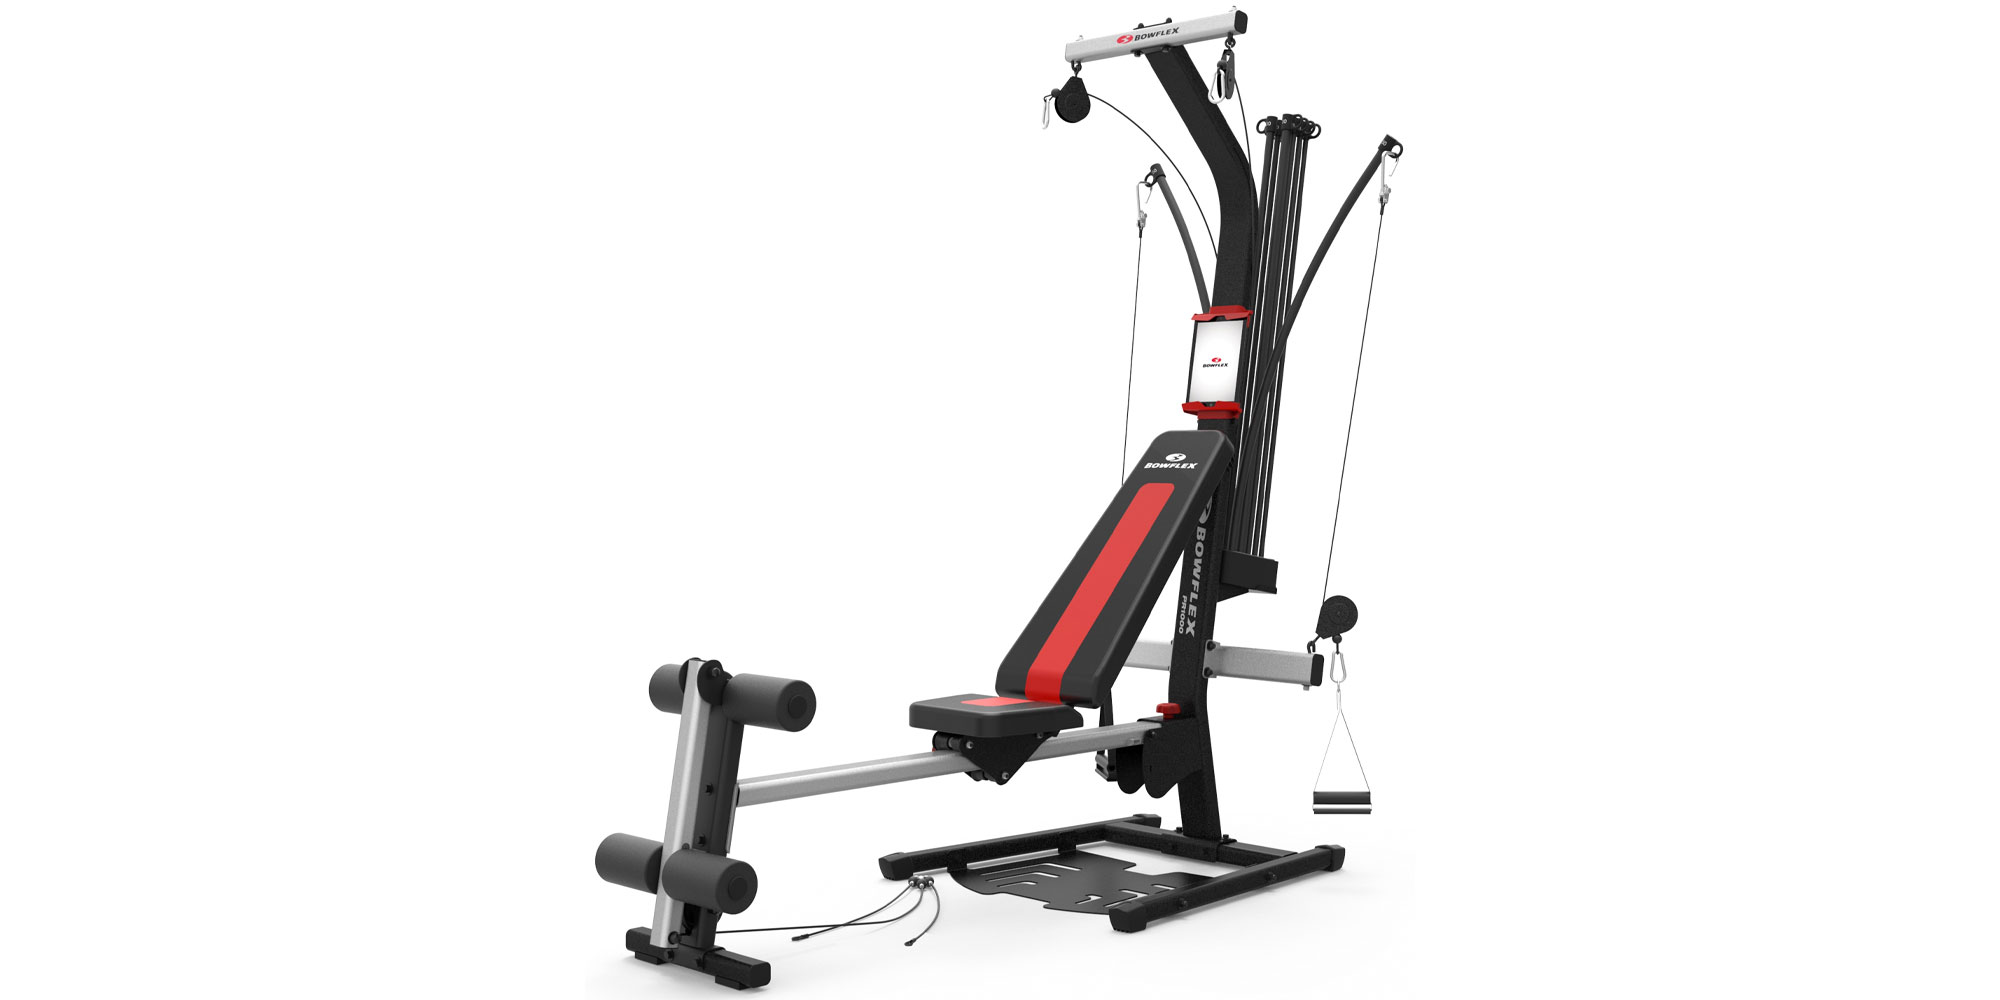 Get a solid workout at home on this Bowflex Home Gym for $399 (Reg. $599) - 9to5Toys